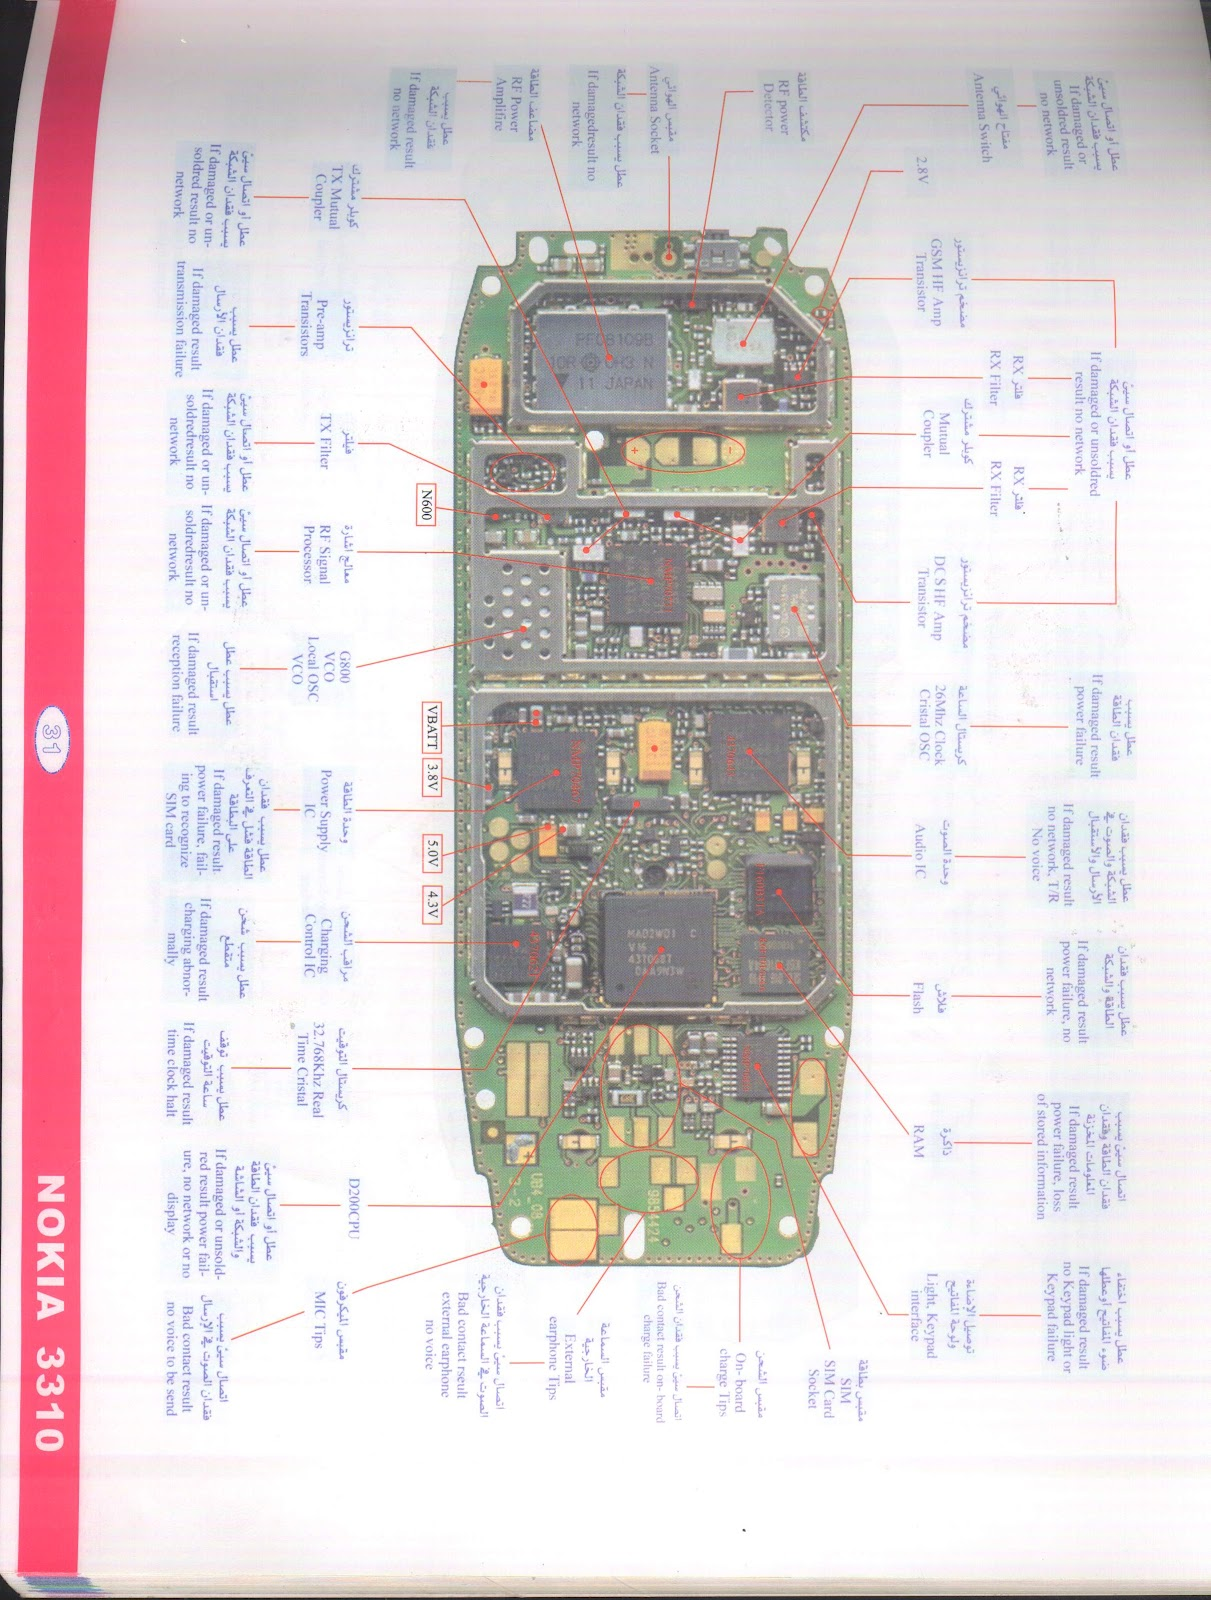 Schematic Diagram J200: How to make circuit amplifier